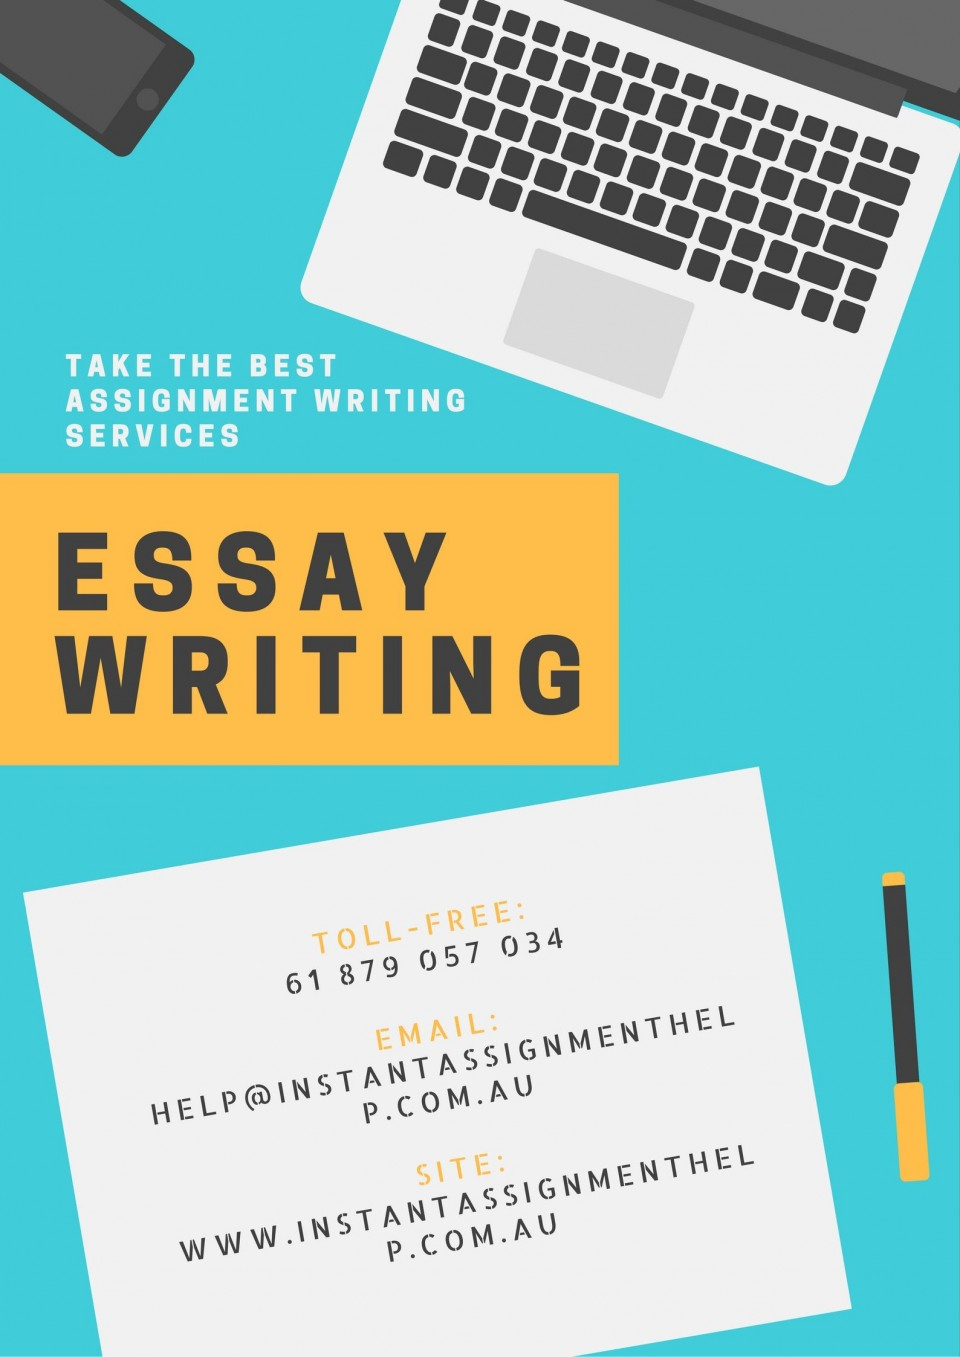 004 Essay Writing Help Example Frightening Contests For Middle School Students Near Me Australia 960